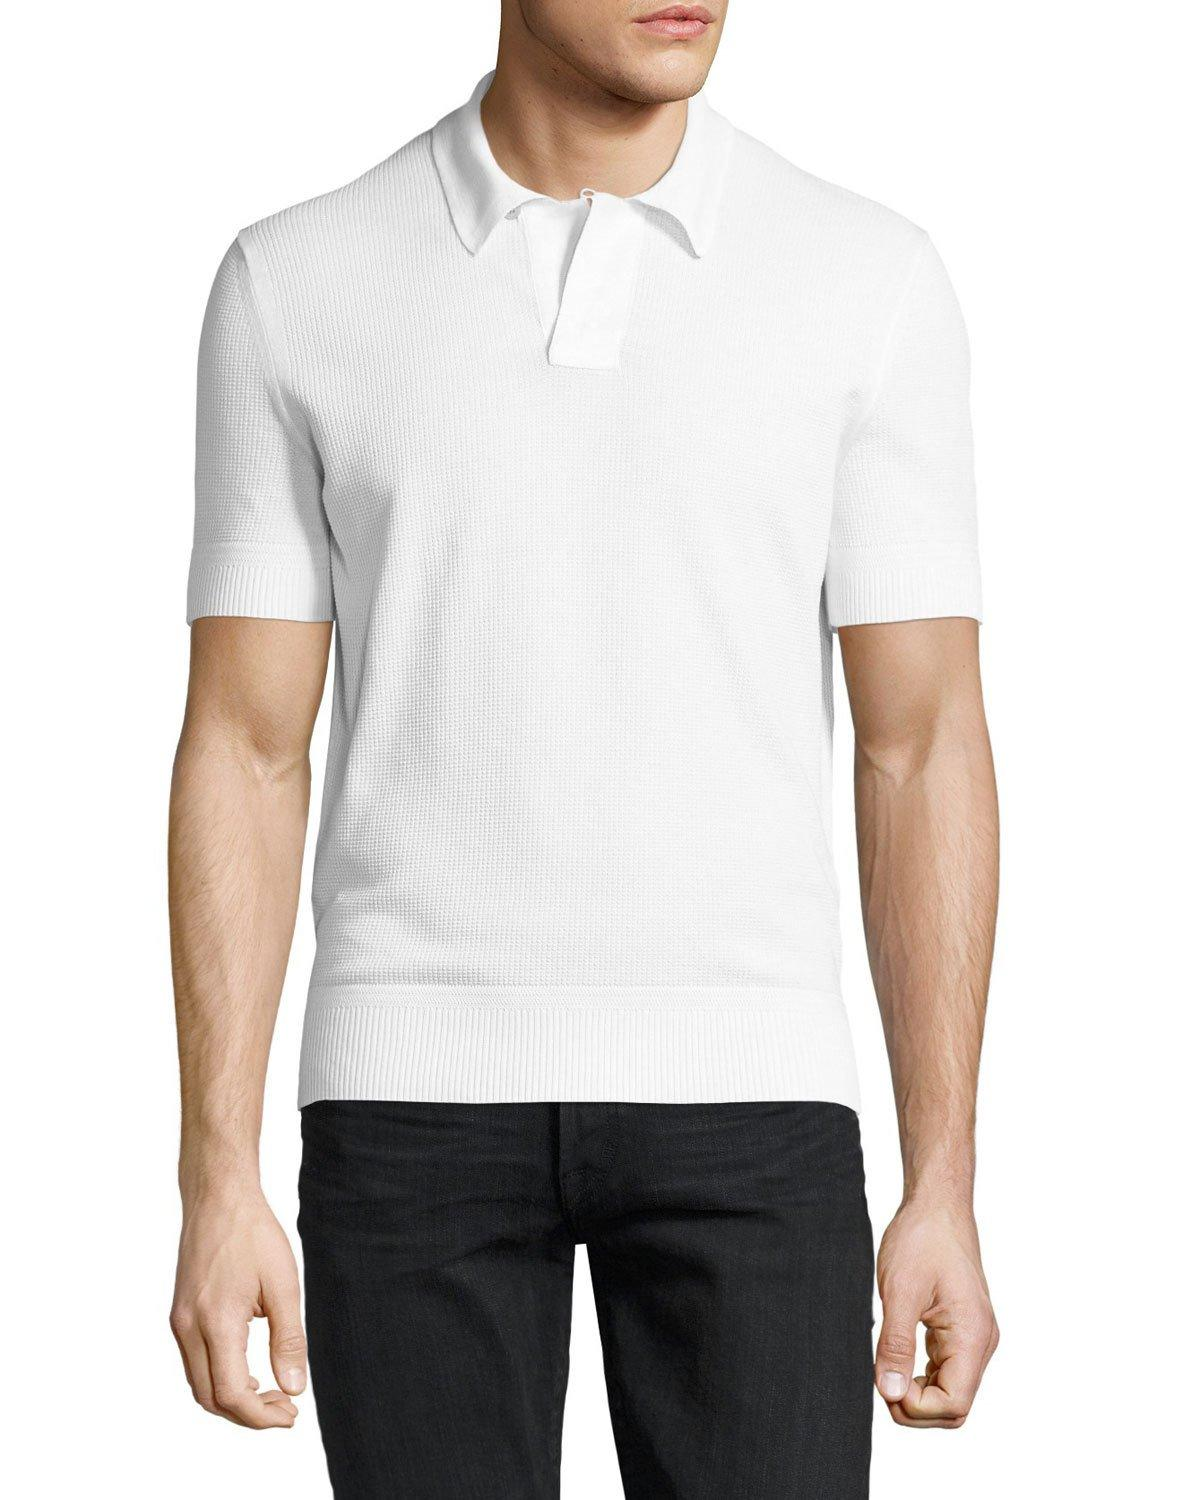 tom ford waffle knit short sleeve pullover in white for. Black Bedroom Furniture Sets. Home Design Ideas